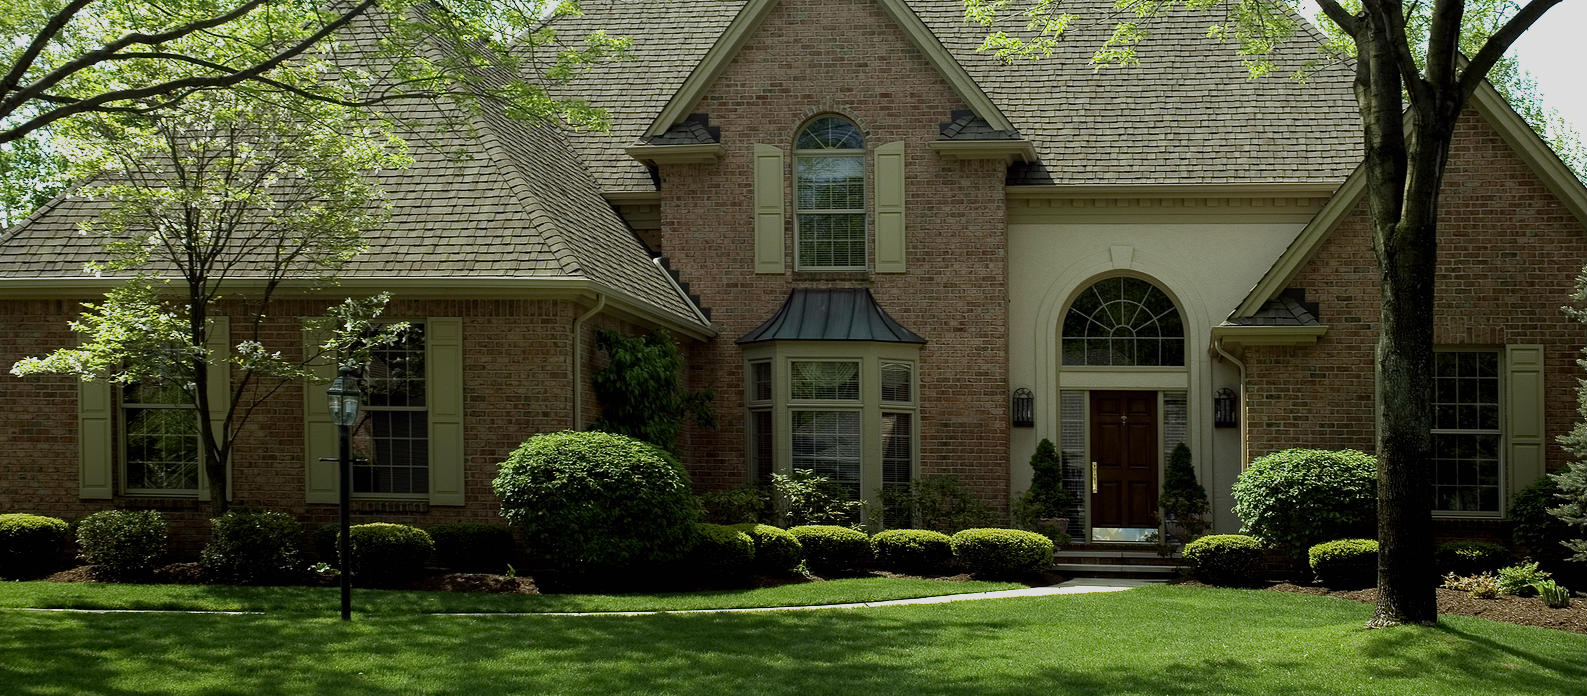 Anthonys Lawn Care & Landscaping | Landscaping and Tree